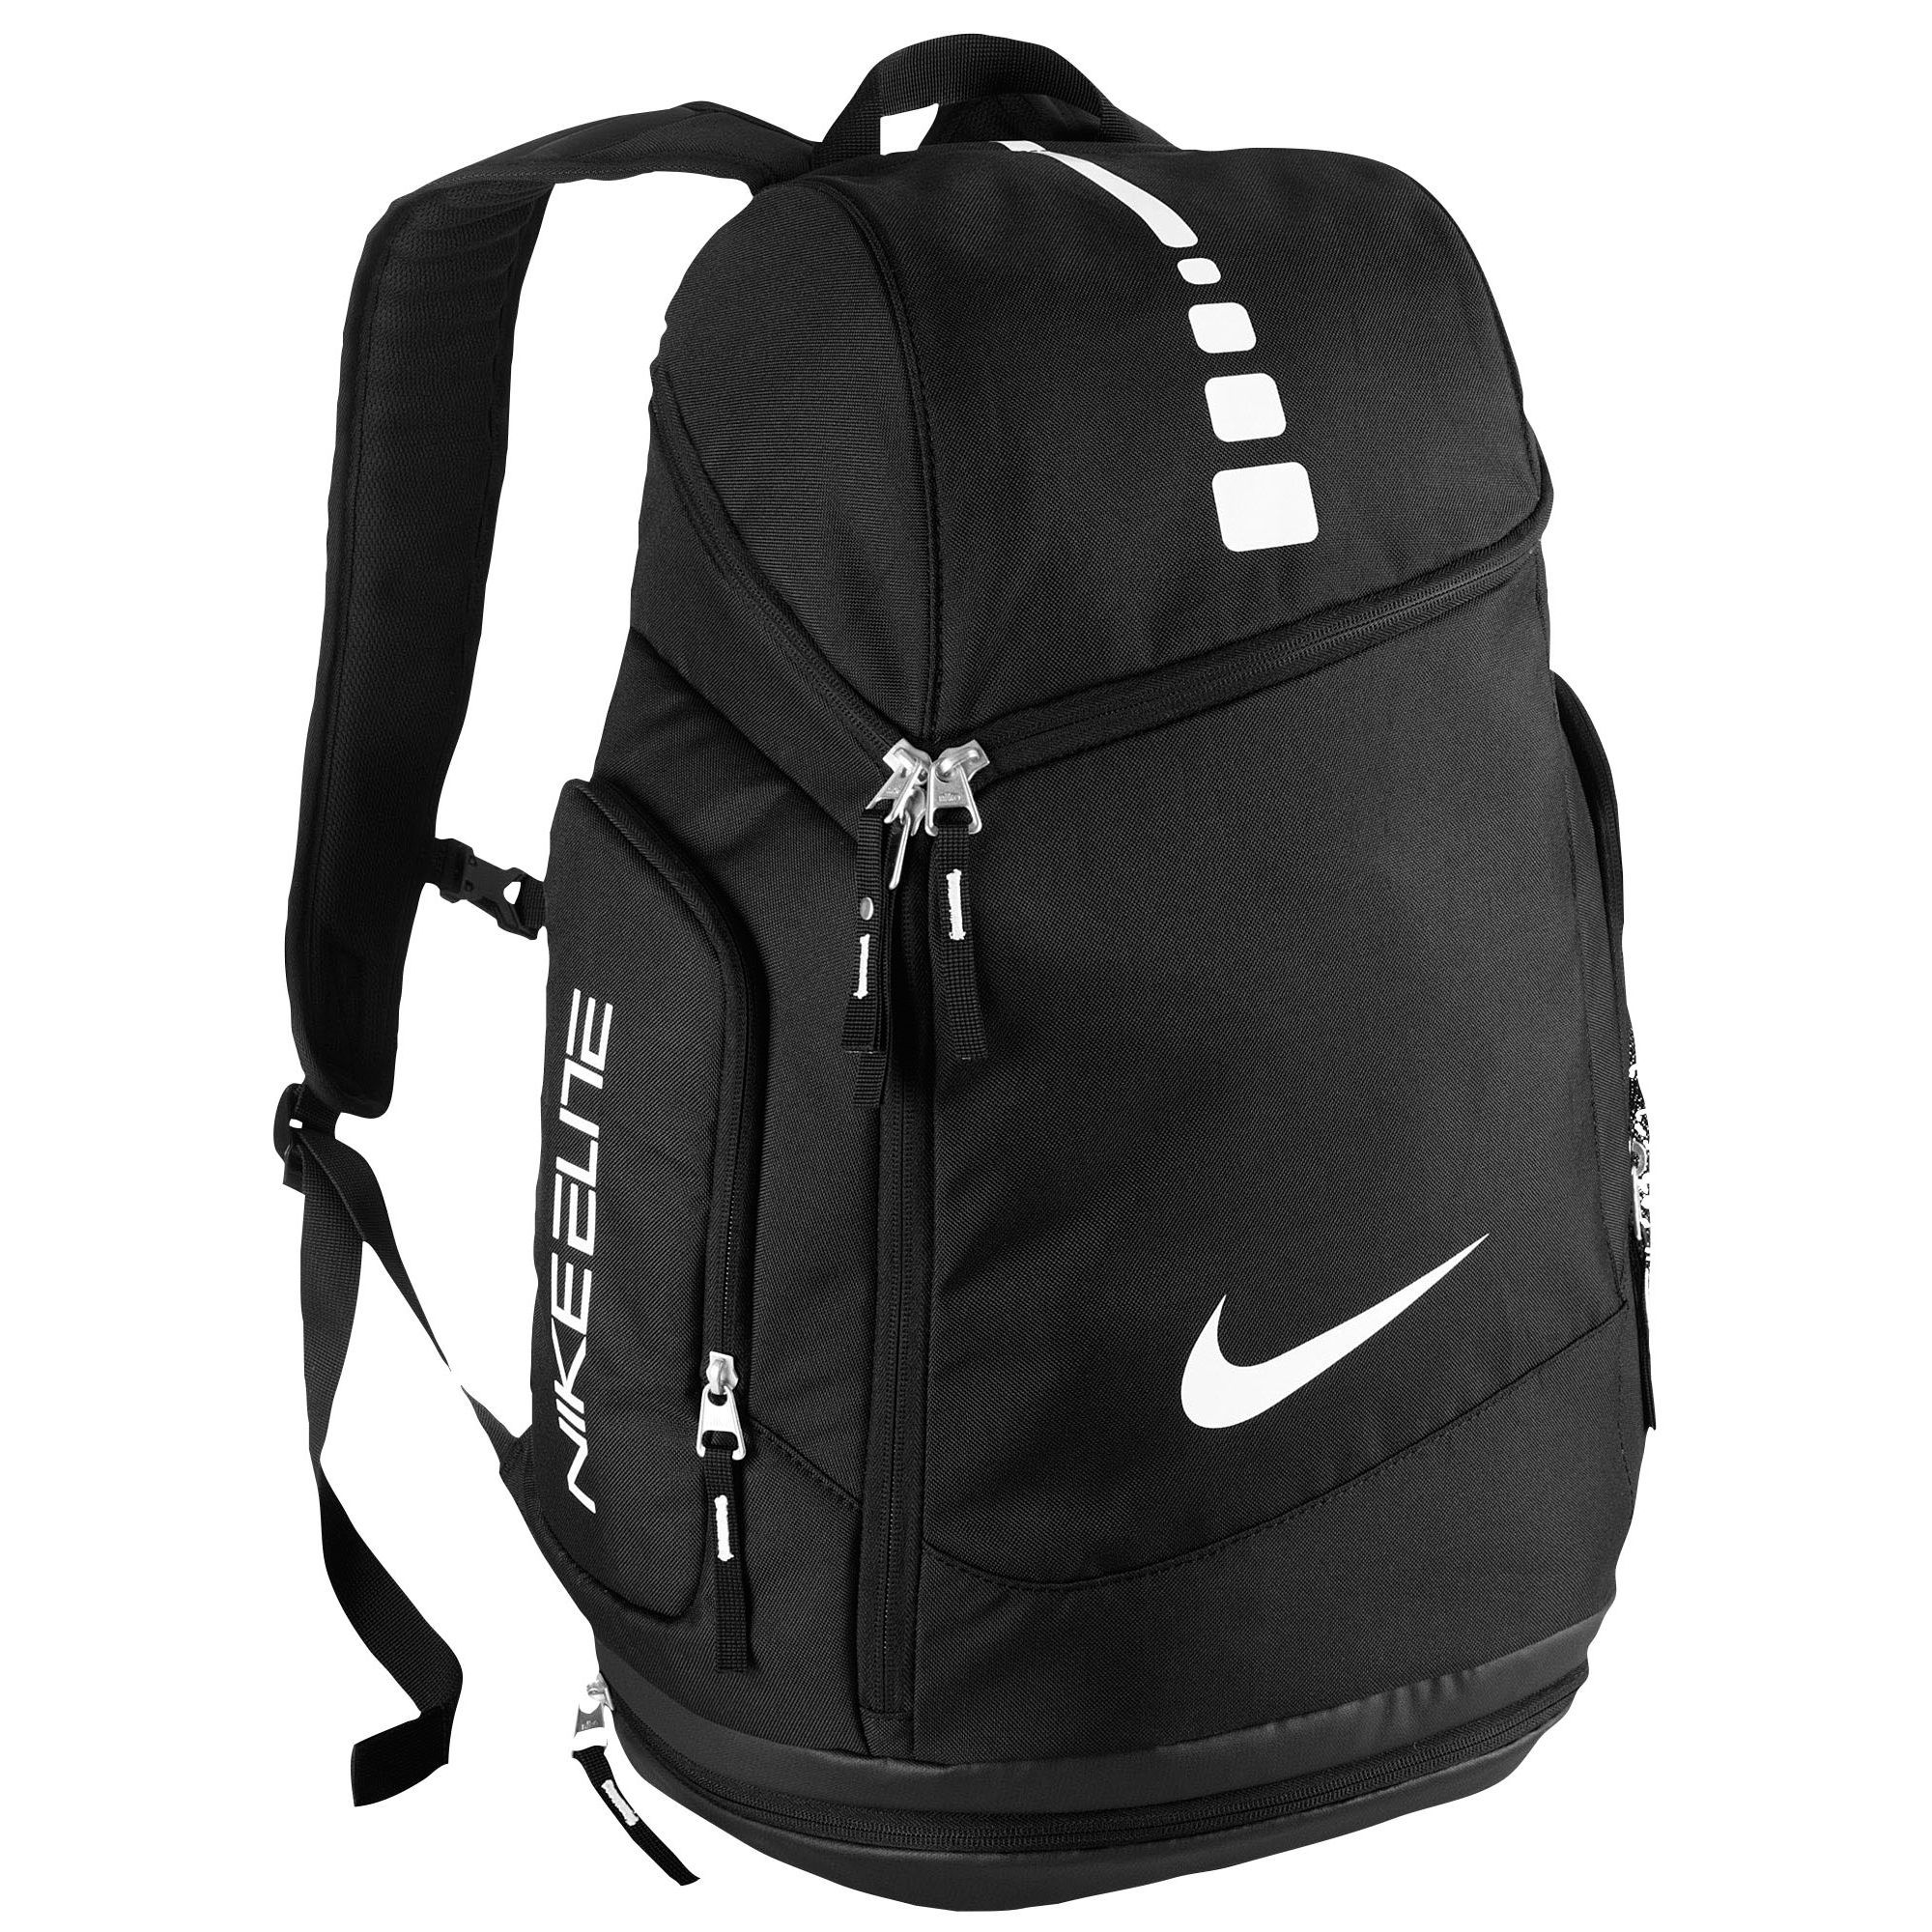 Nike Hoops Elite Max Air Team Backpack - Accessories  e8a21afdc